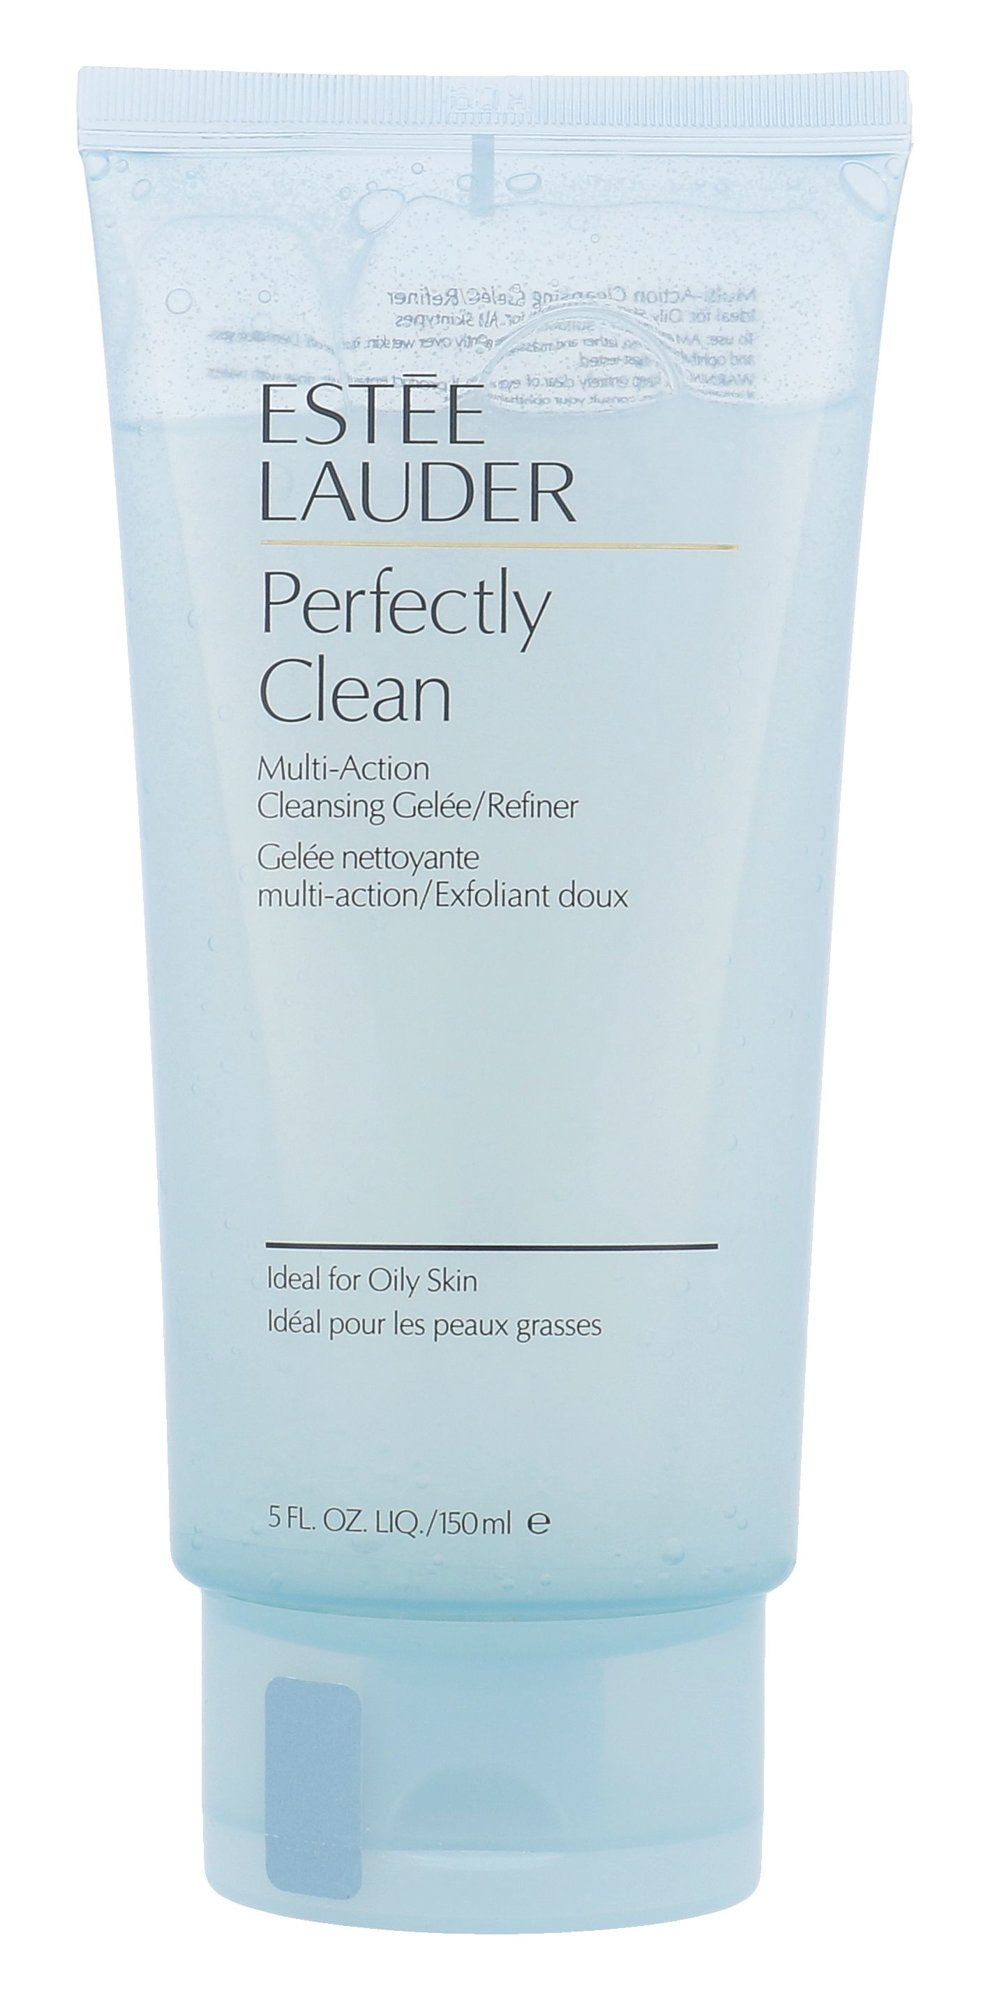 Estée Lauder Perfectly Clean Cosmetic 150ml